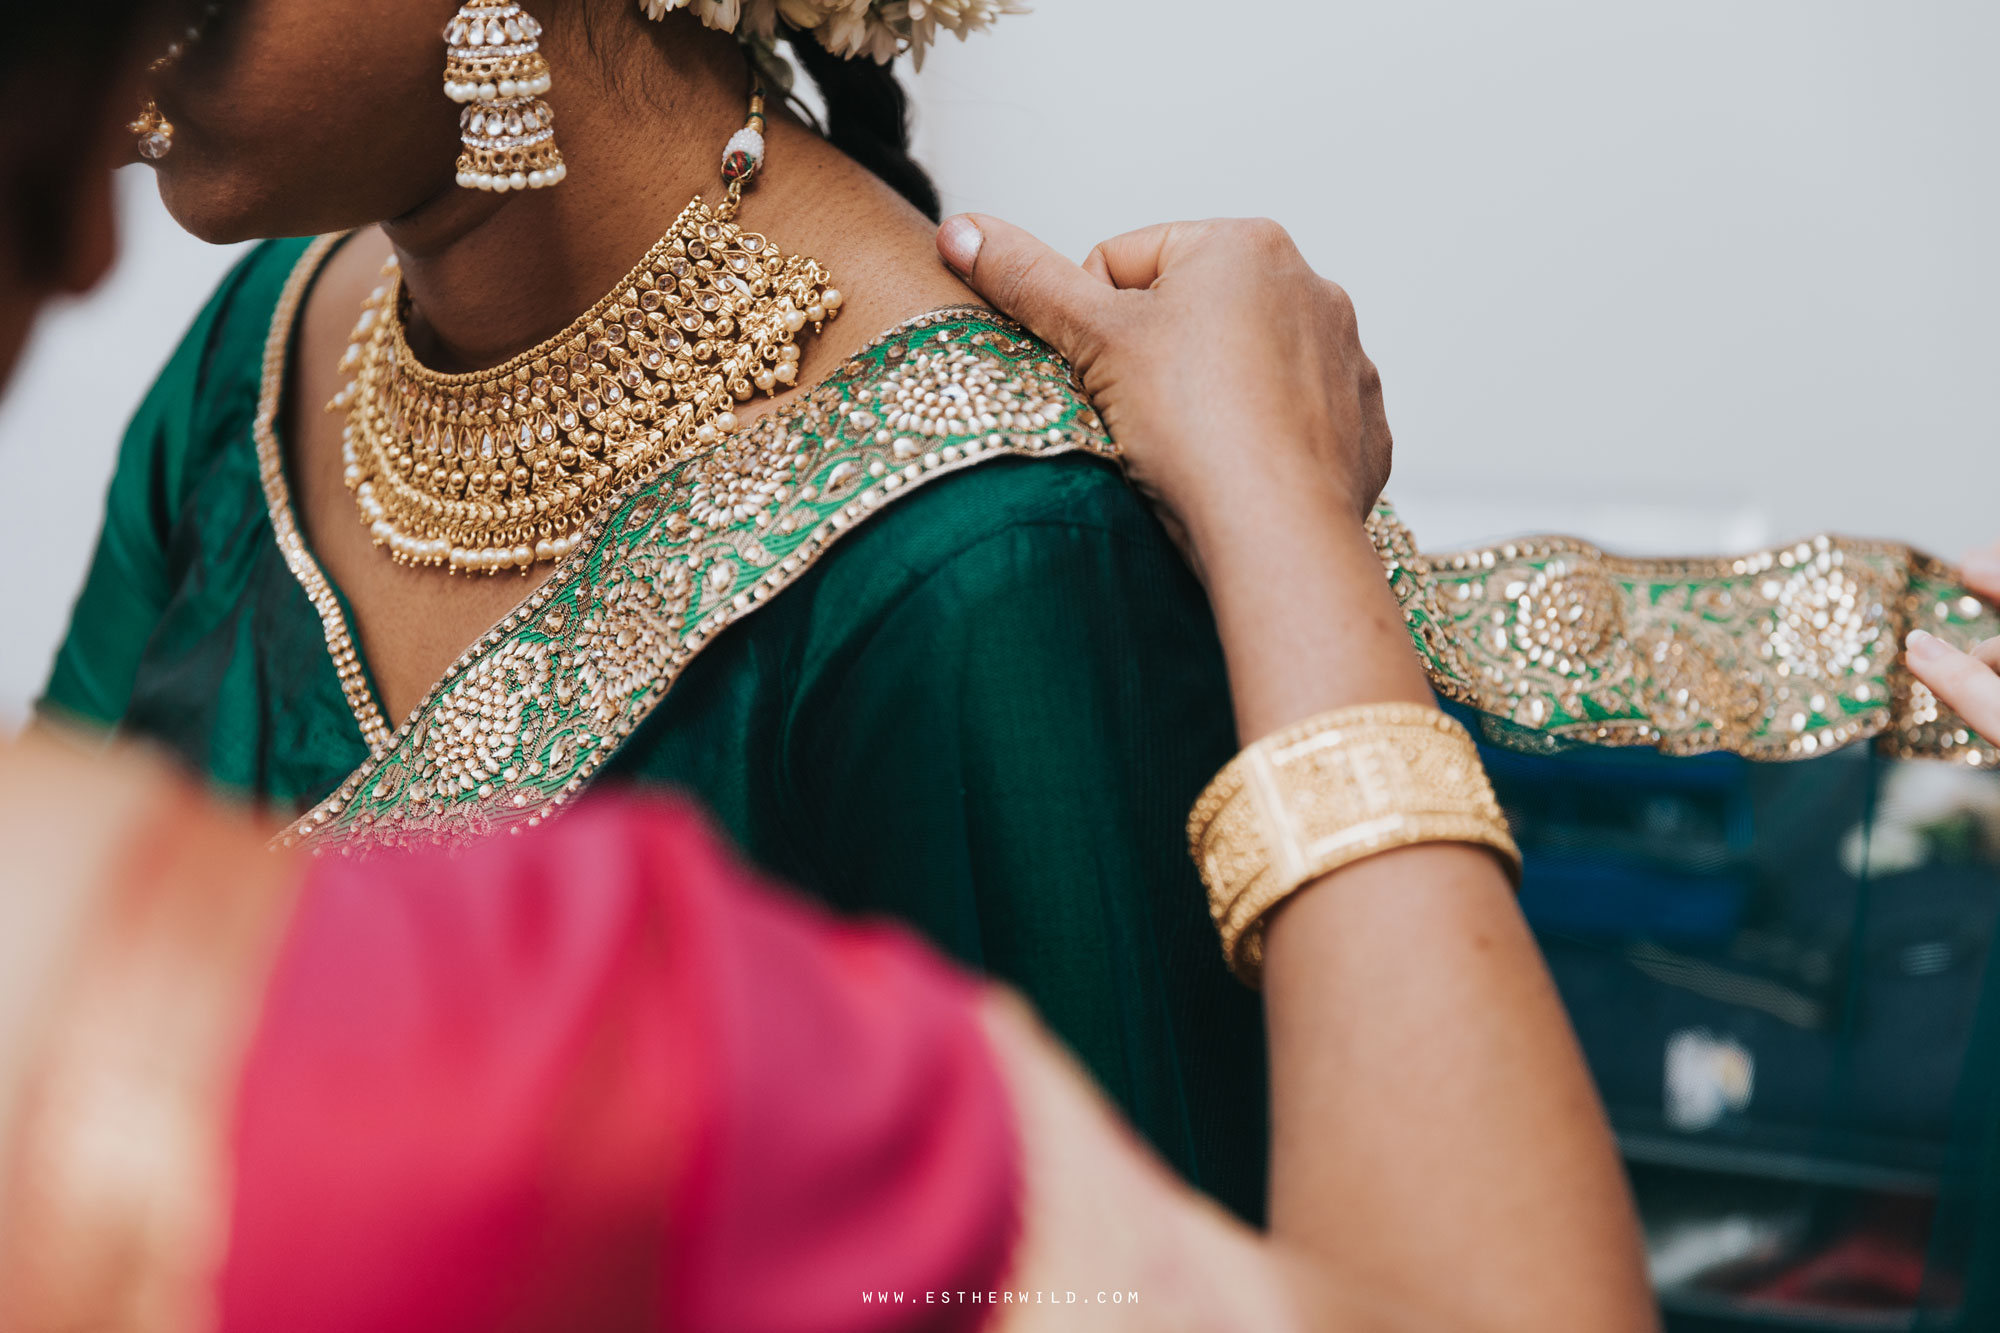 Northbrook_Park_Farnham_Surrey_London_Wedding_Hindu_Fusion_Esther_Wild_Photographer_IMG_3019.jpg